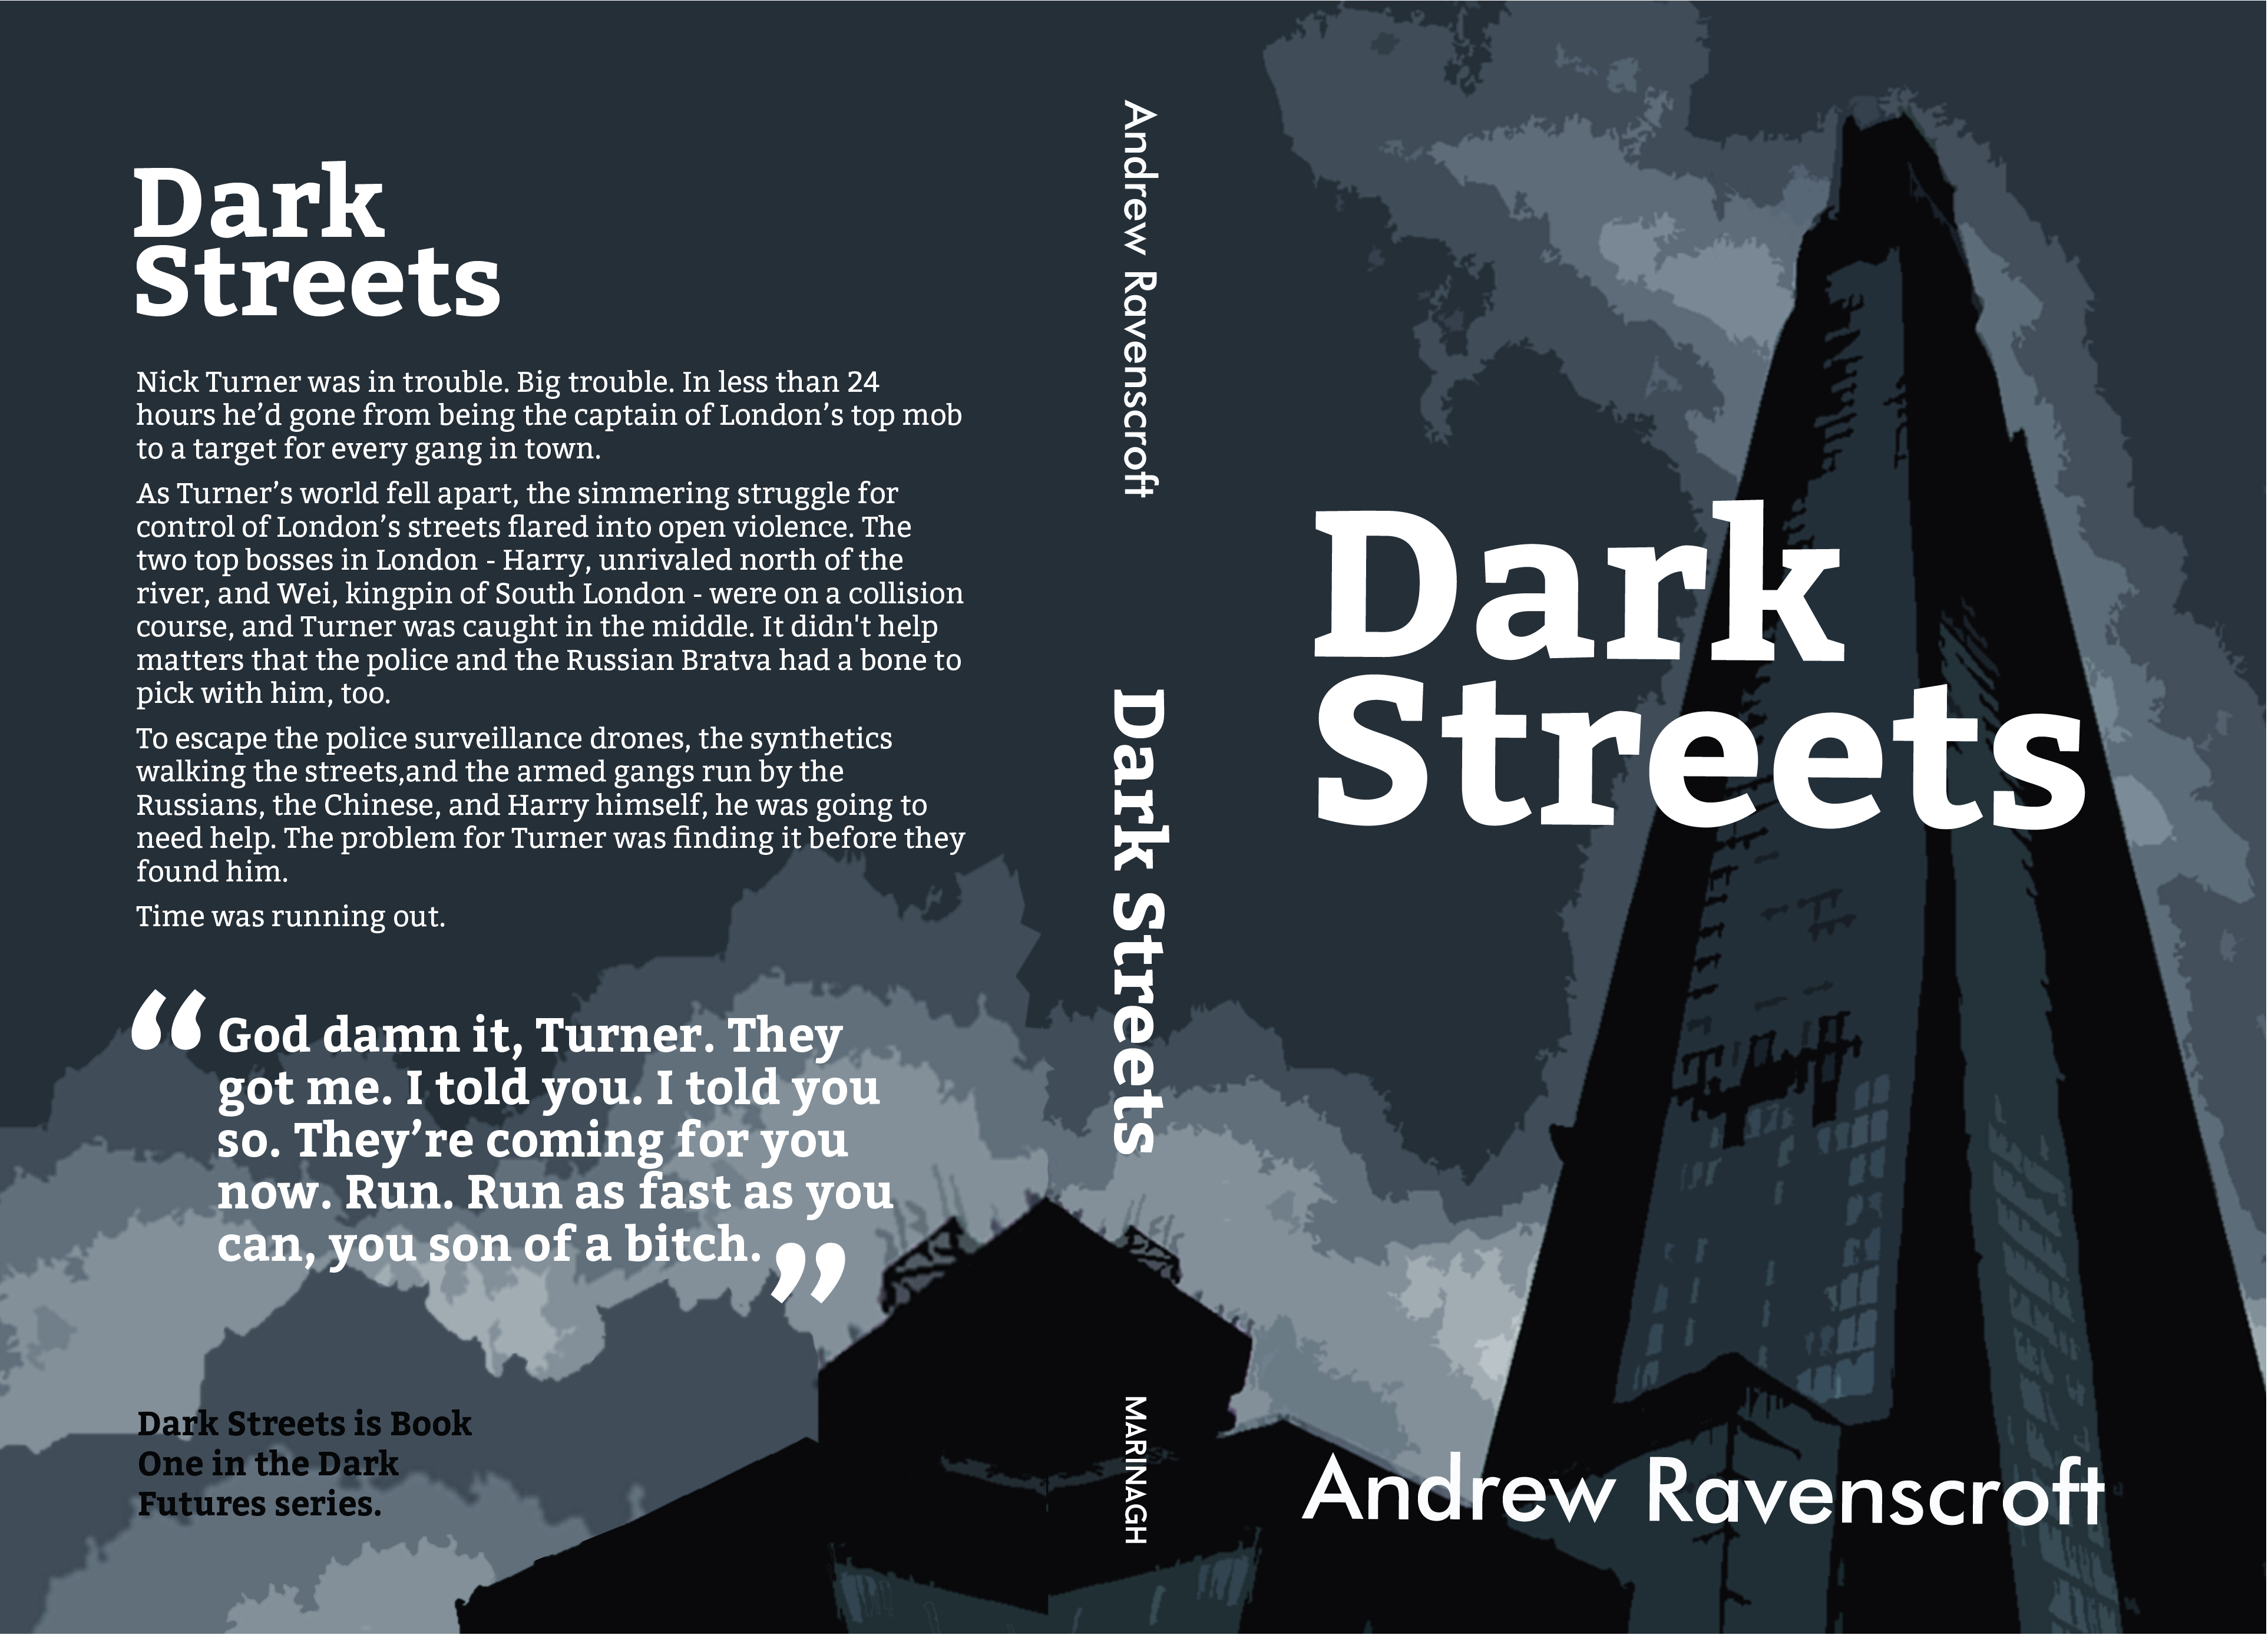 Dark Streets cover design and photograph © Mary Musker 2014.